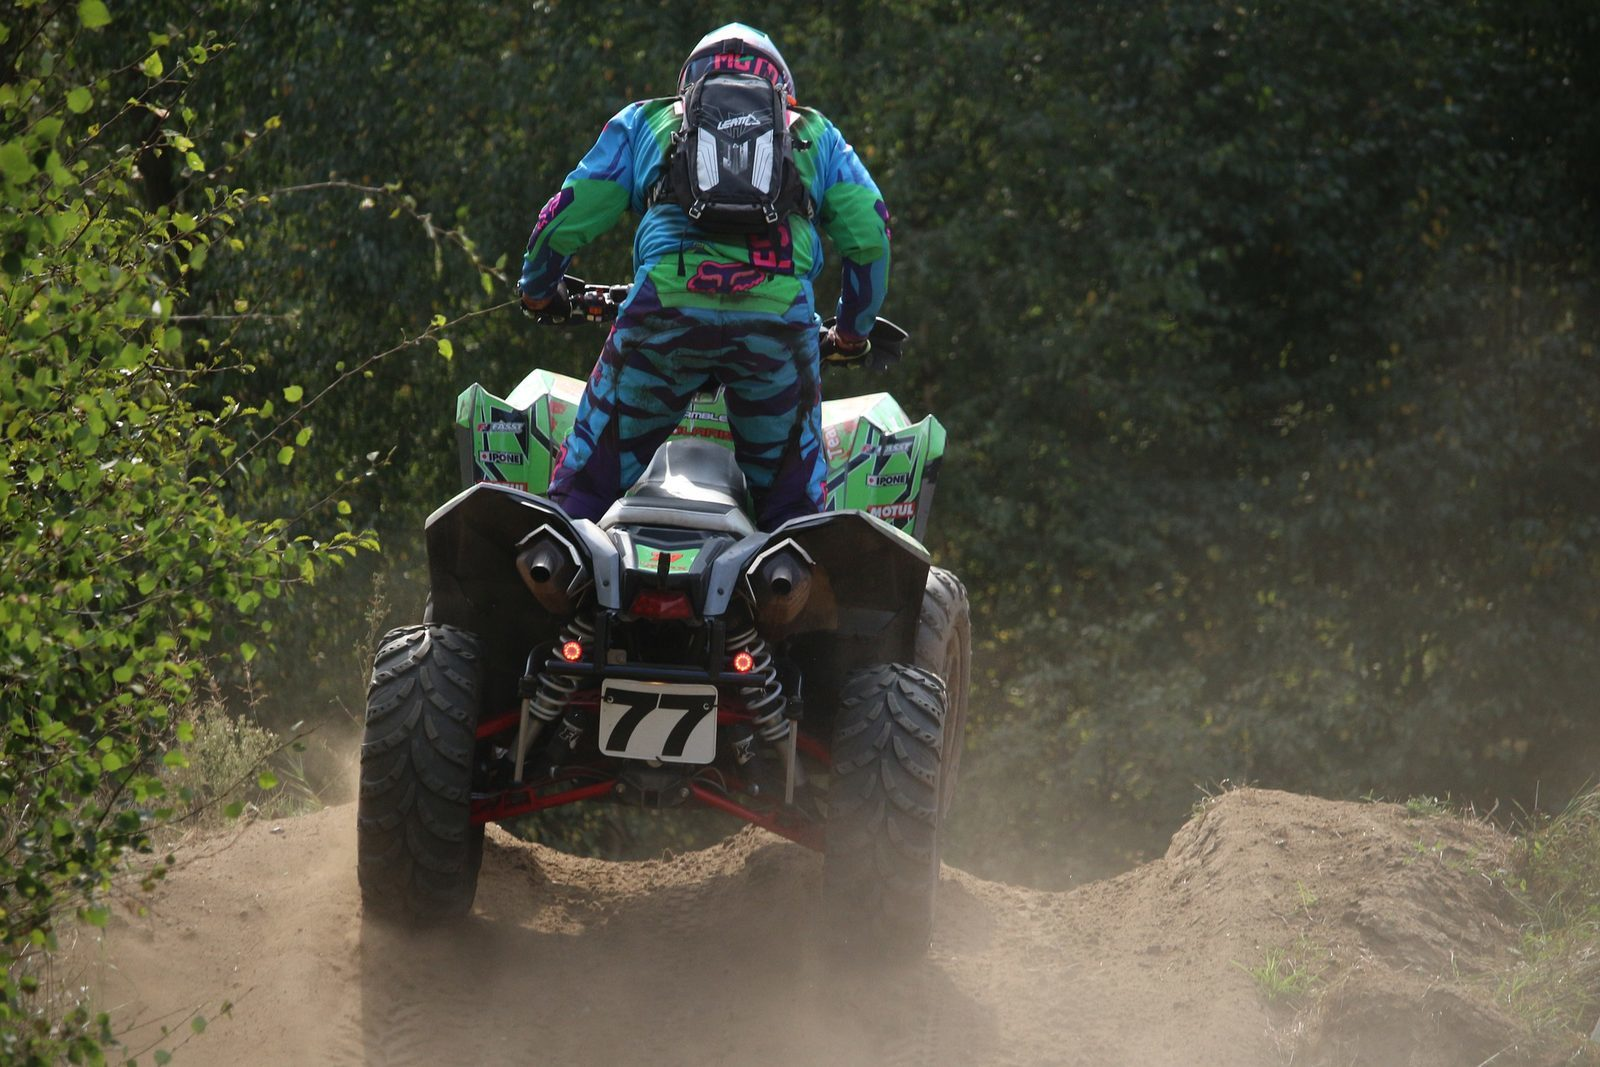 Pamper Jump/quad riding